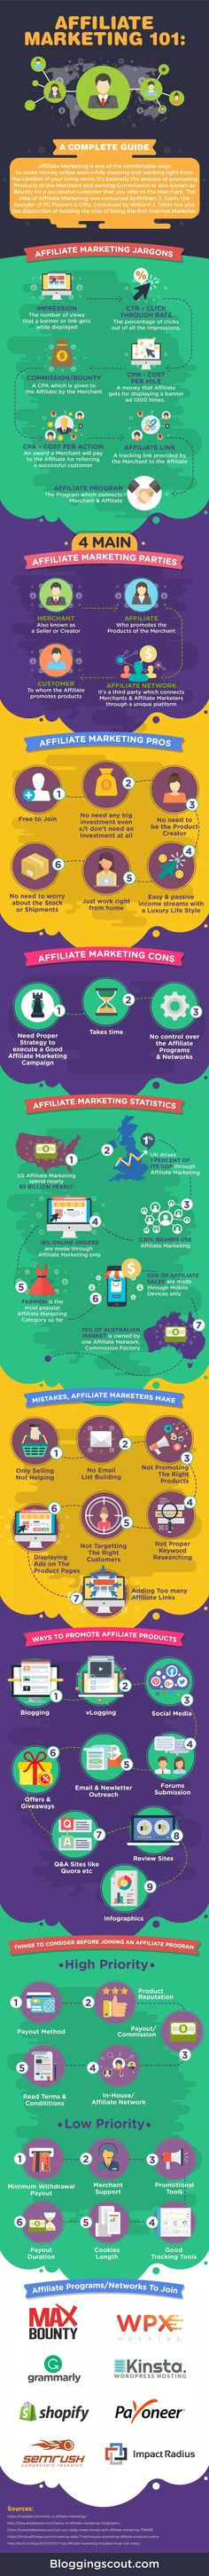 The guide about affiliate marketing success in this infographic. Discover how to create a successful affiliate marketing business and make money online. Internet Marketing, Online Marketing, Social Media Marketing, Digital Marketing, Marketing Videos, Content Marketing, Marketing Process, Marketing Program, Online Advertising